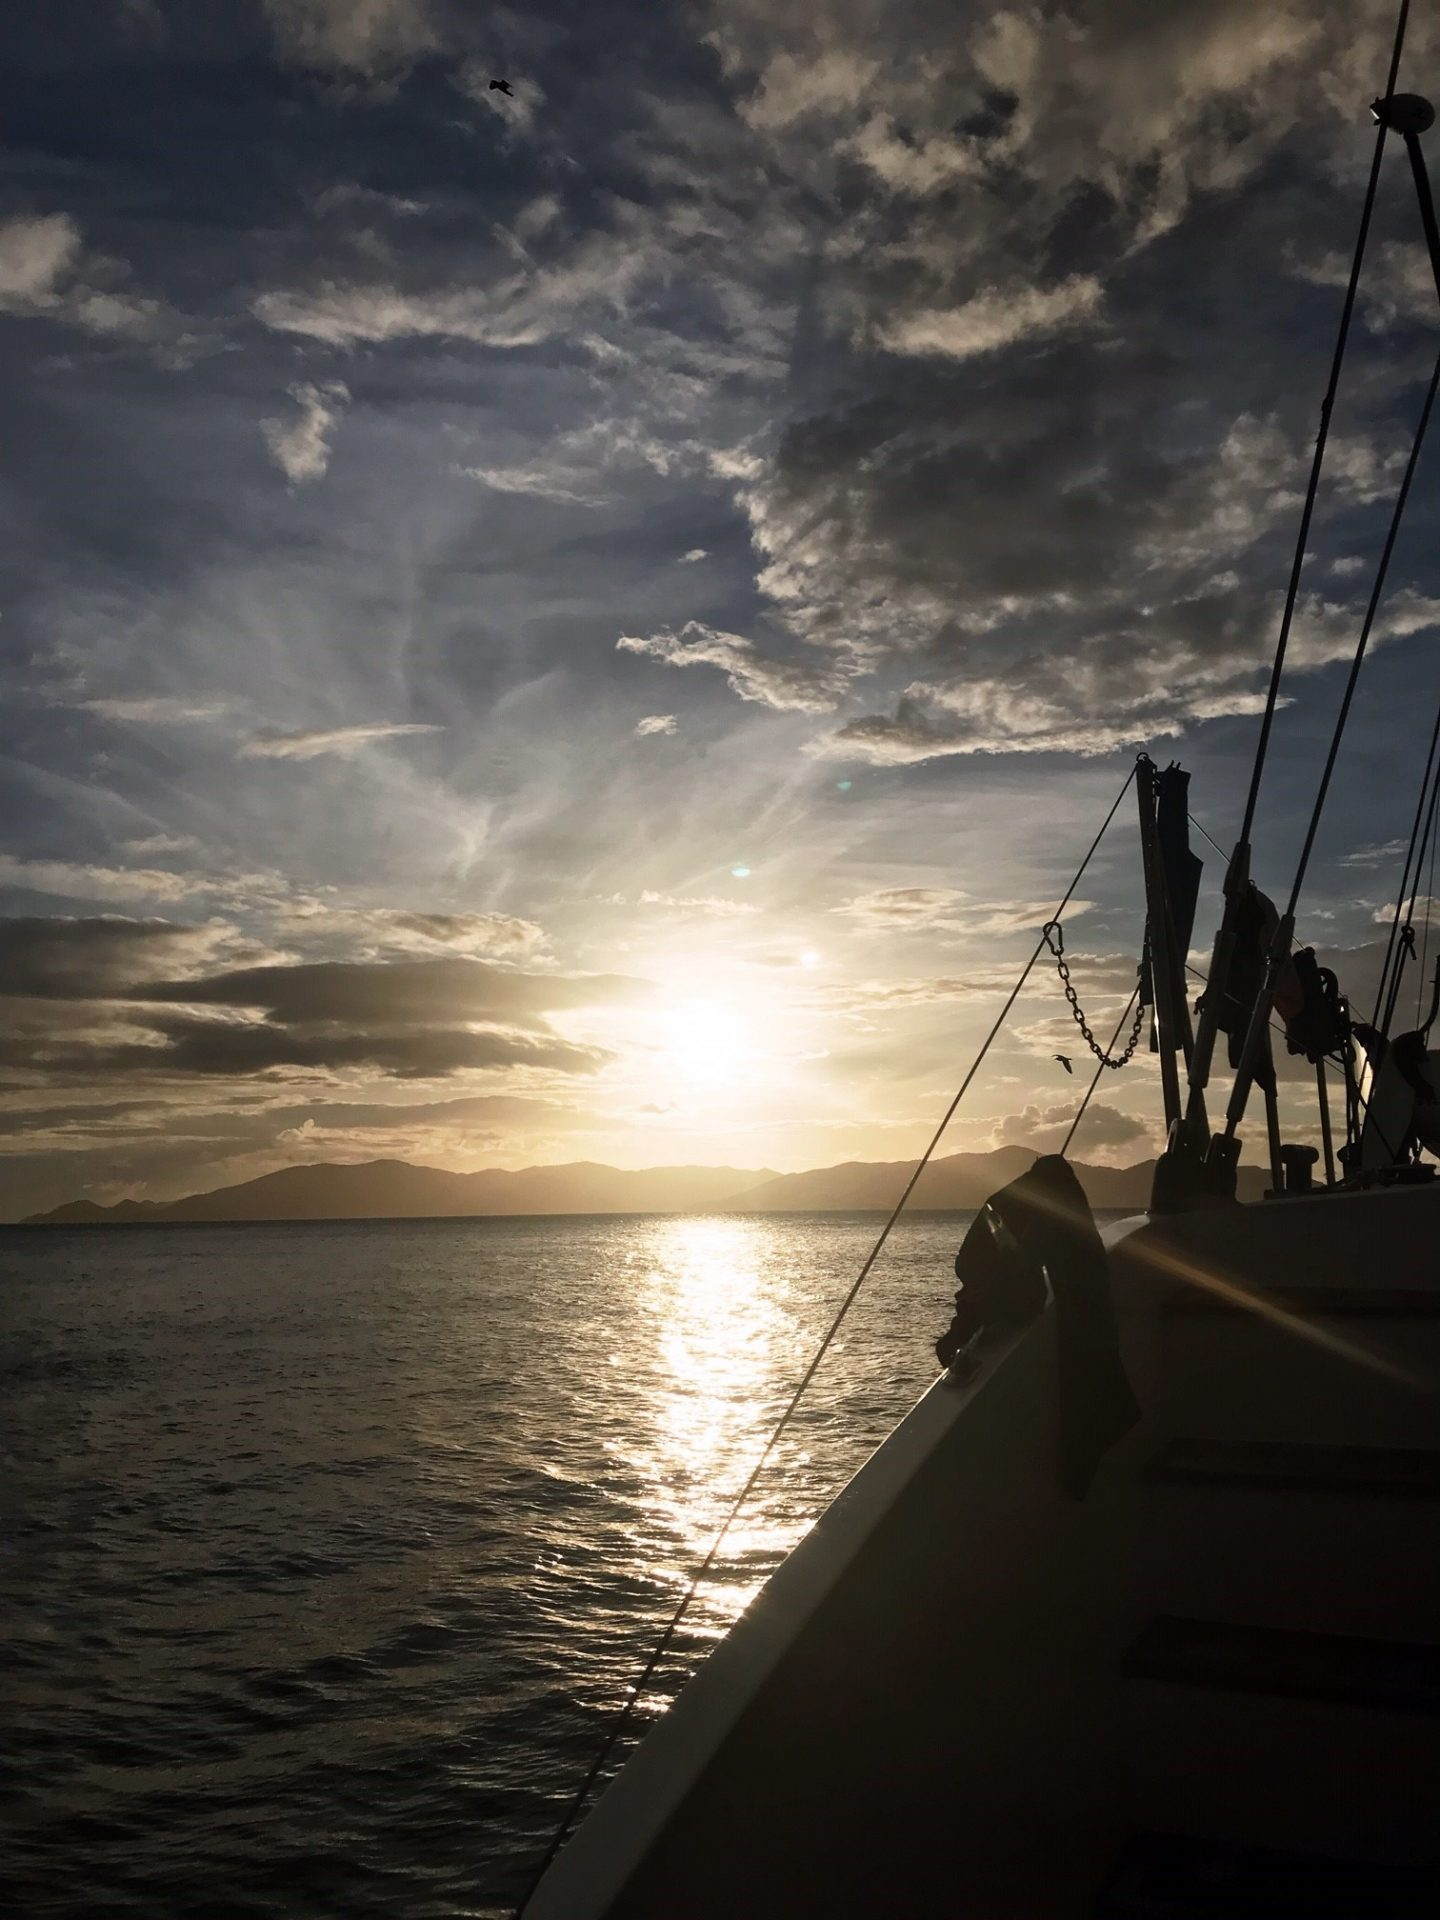 BVI Sailing - the end of the day, watching the sun go down aboard Cuan Law